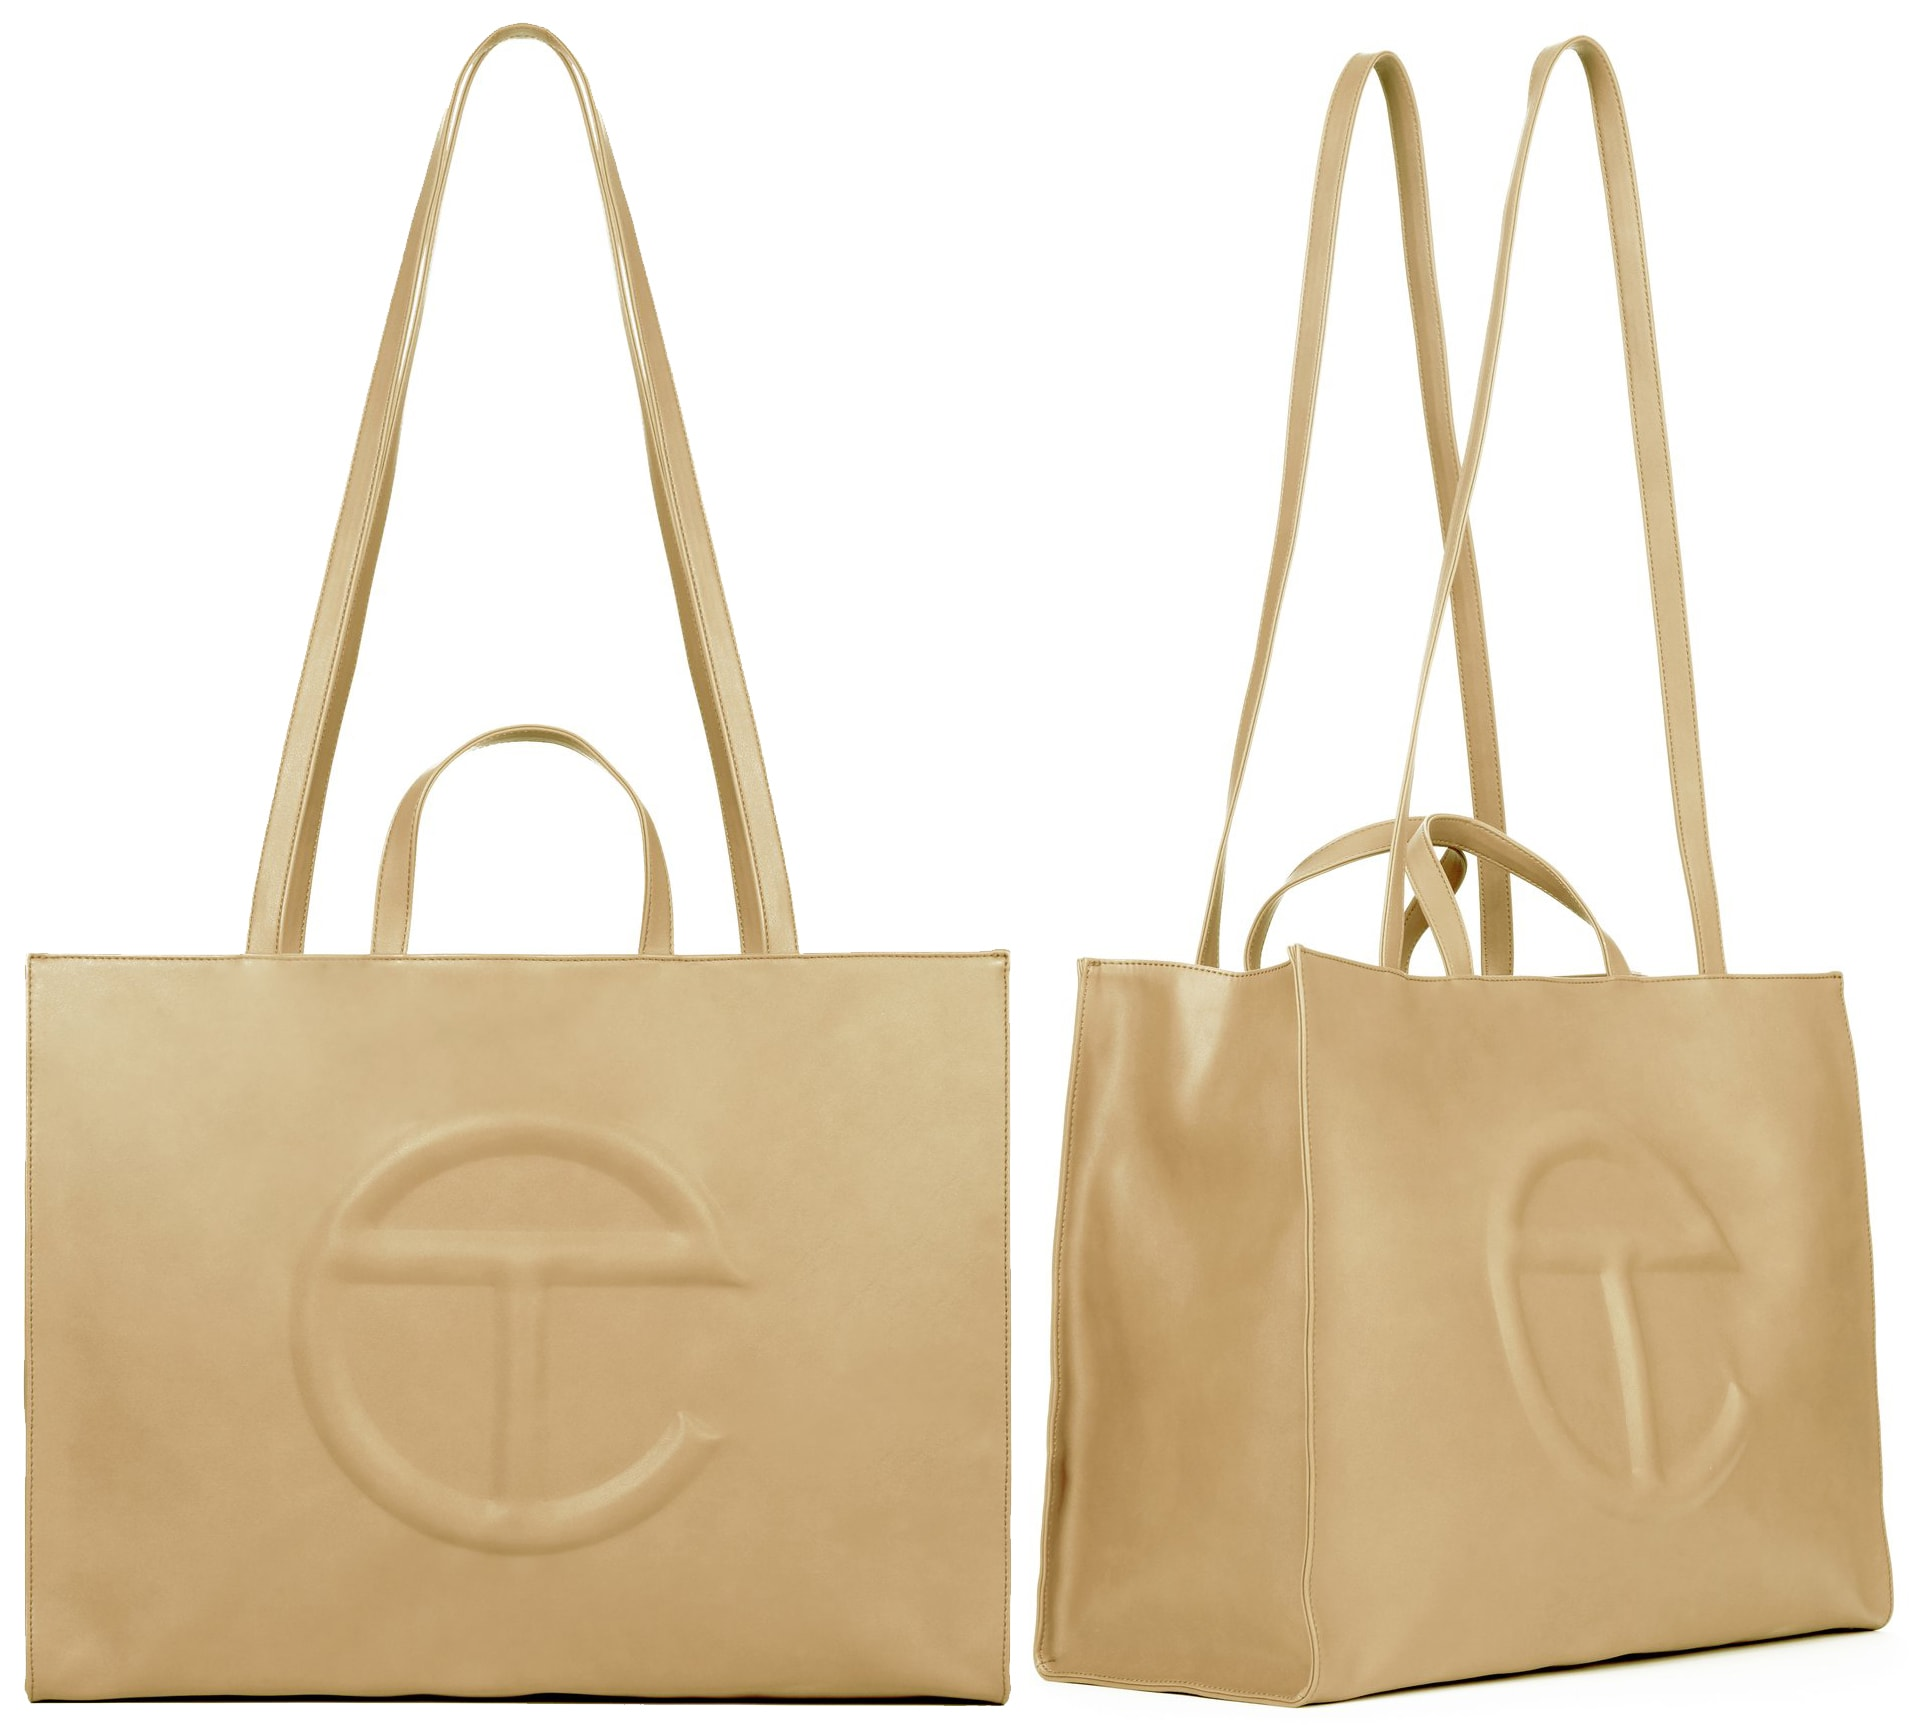 The large cream shopping bag is a classic and it's versatile enough to be paired with just about any other colors